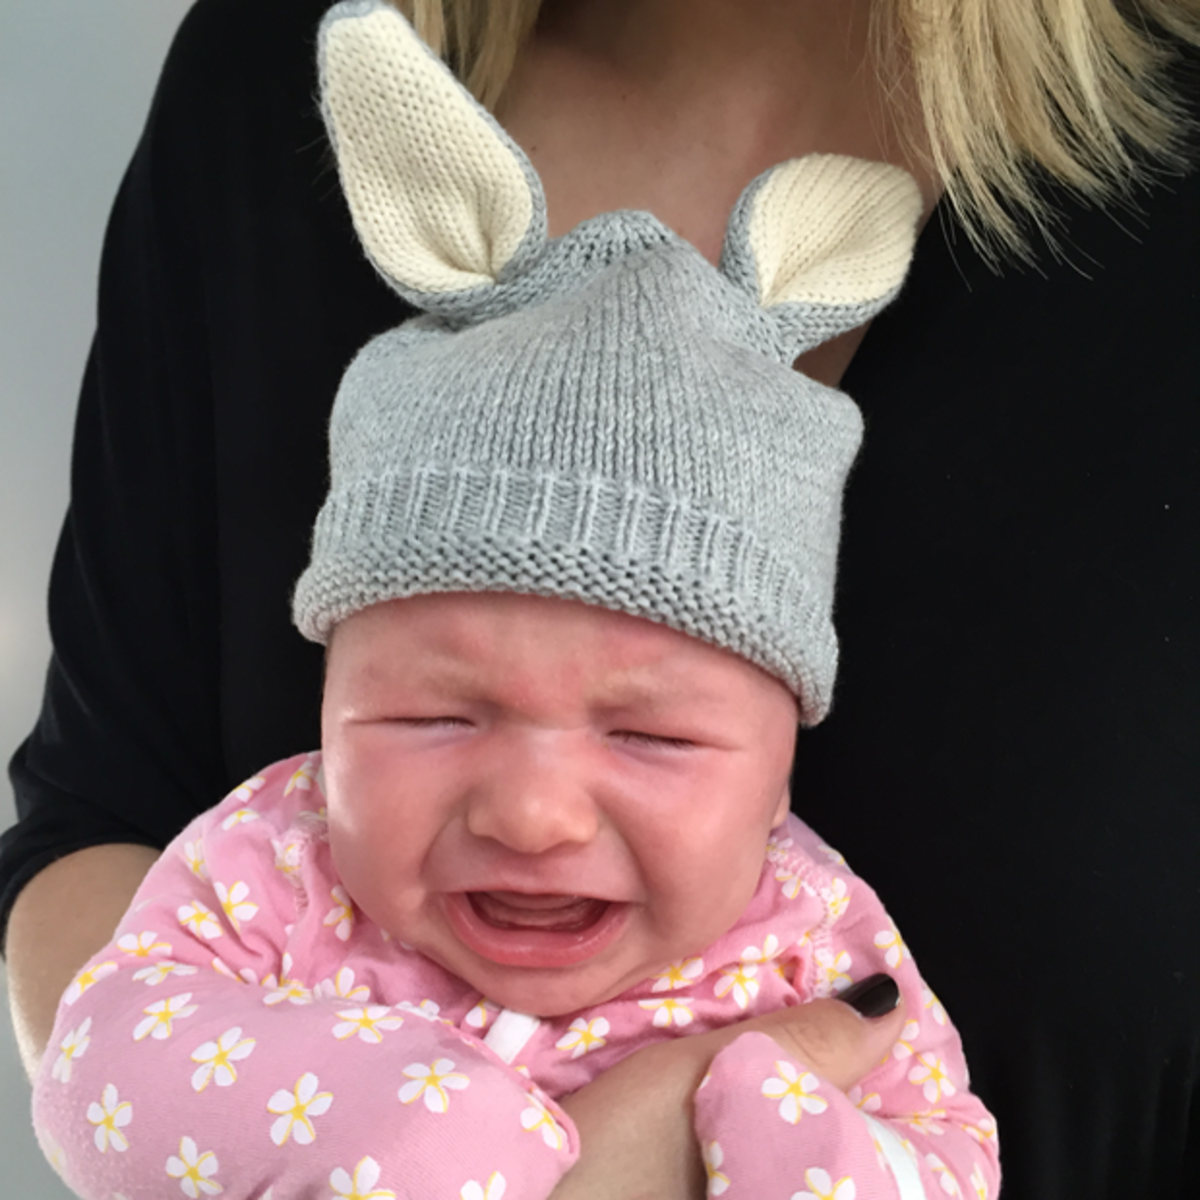 {Sloan, clearly not feeling her bunny ears}